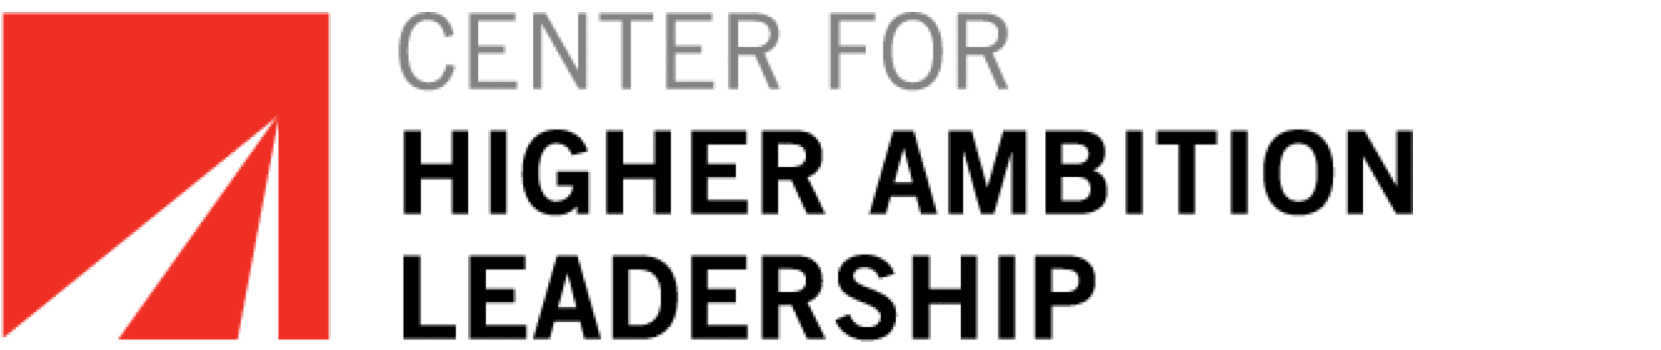 Center for Higher Ambition Leadership